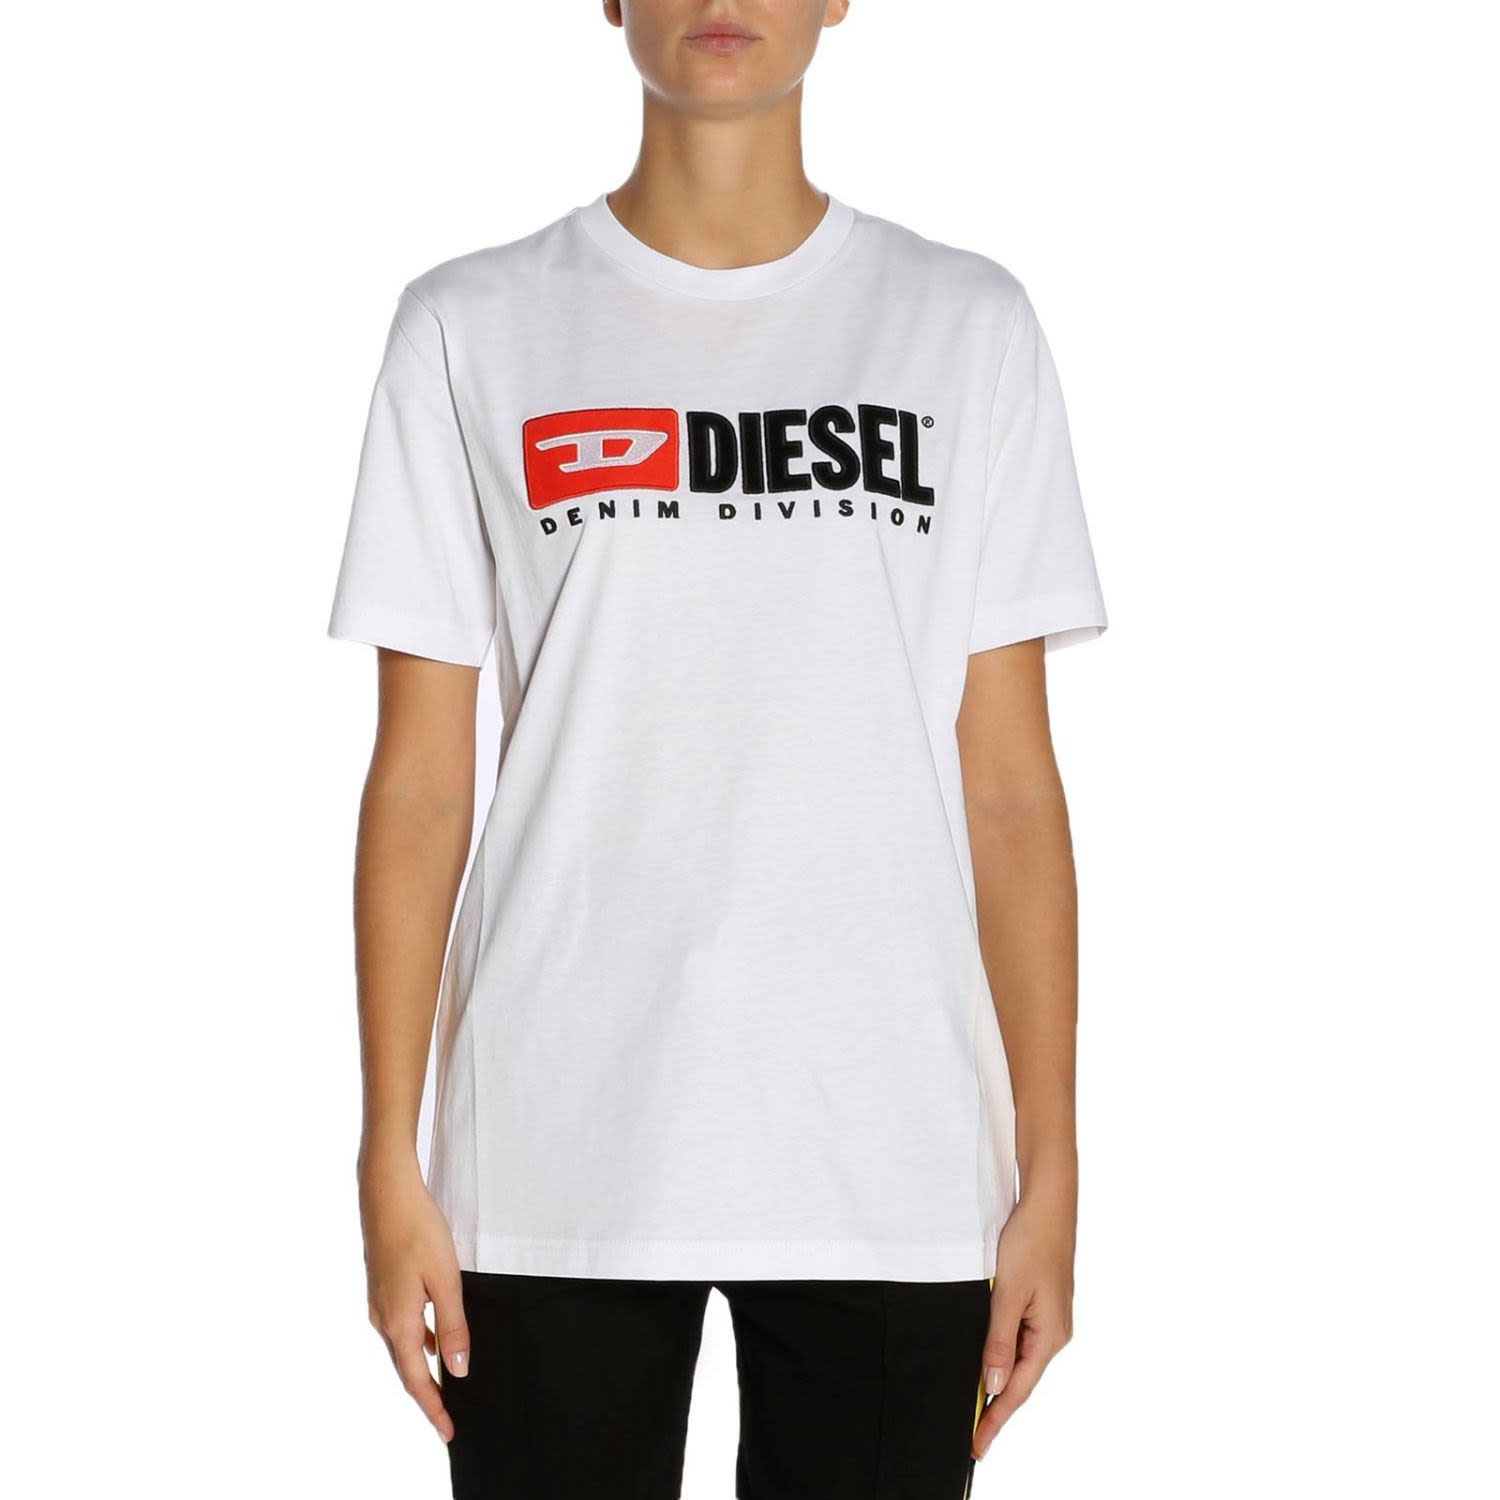 Diesel shirts for women